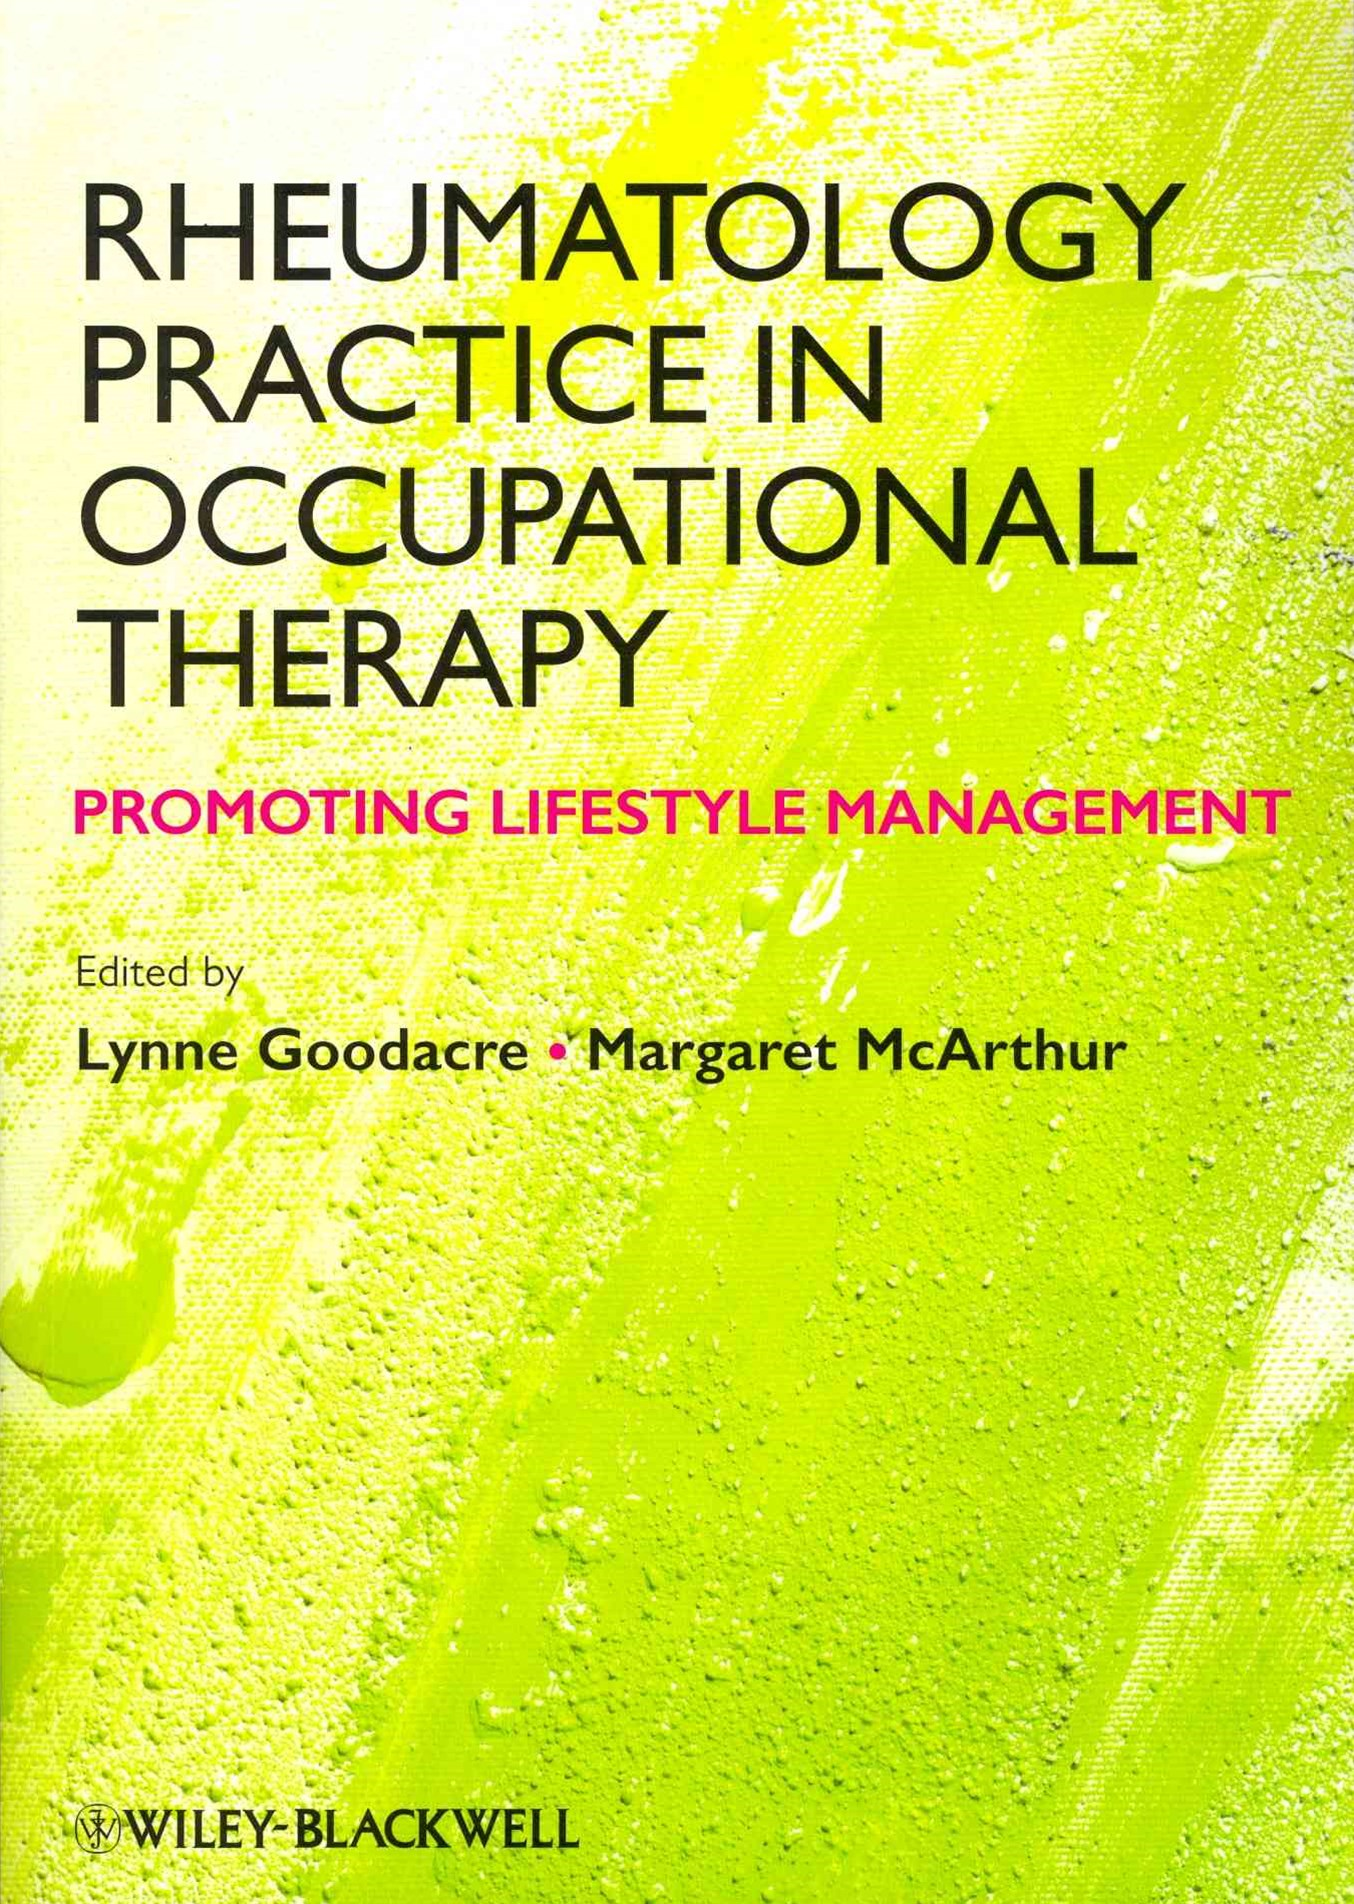 Rheumatology Practice in Occupational Therapy -   Promoting Lifestyle Management